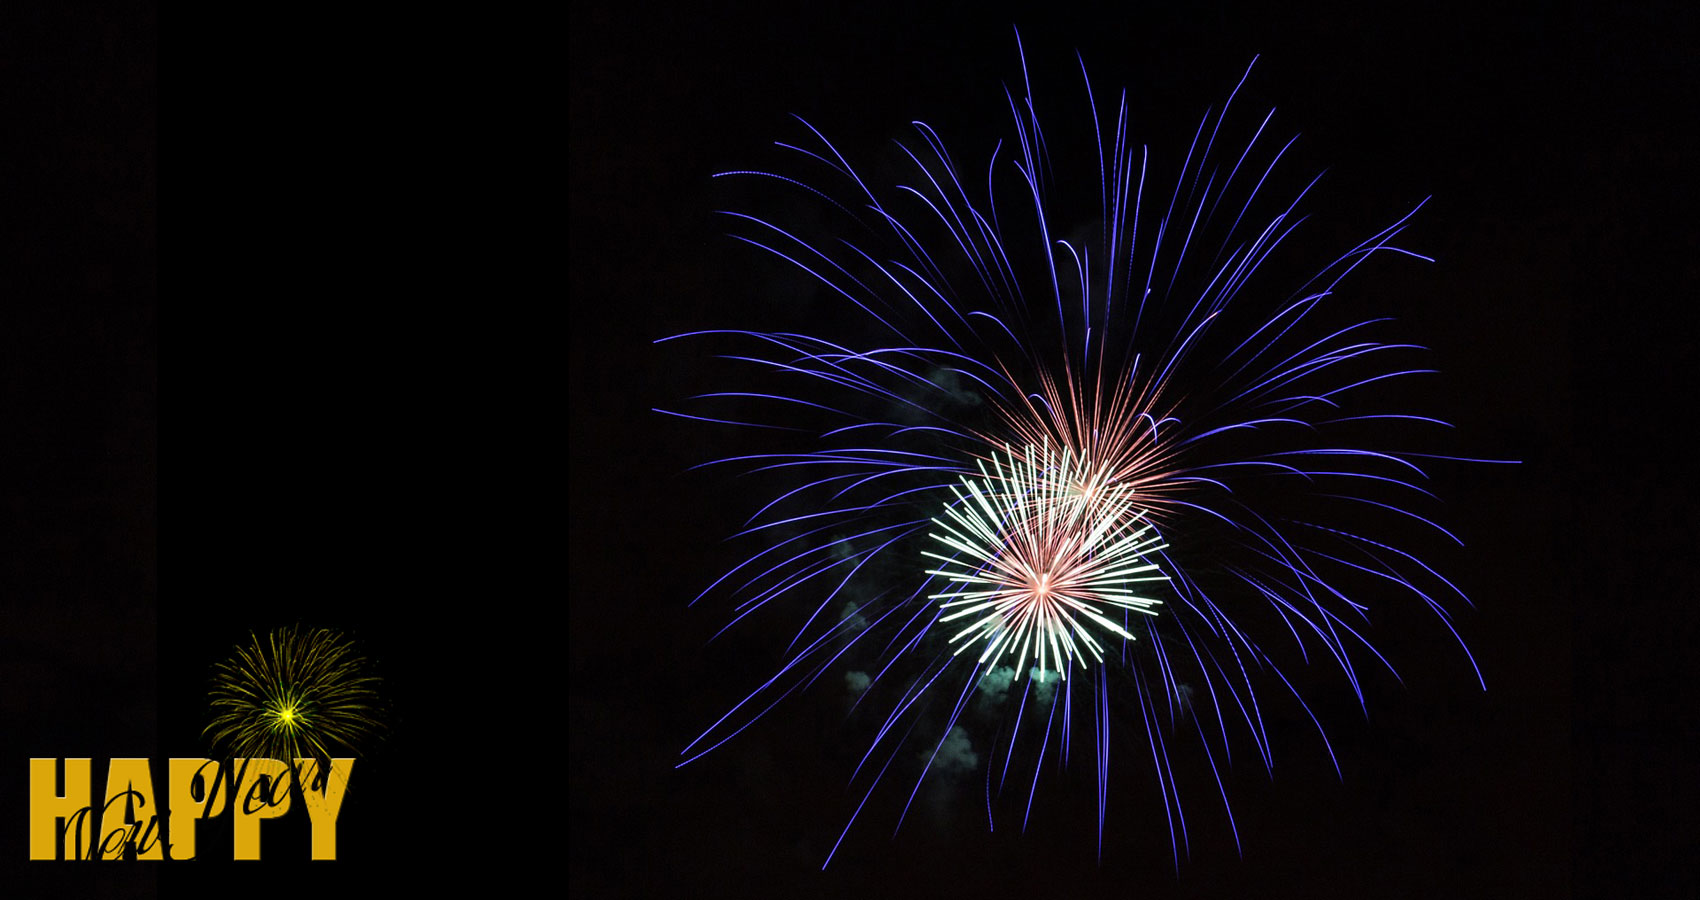 New Year's Wish written by Roger Turner at Spillwords.com